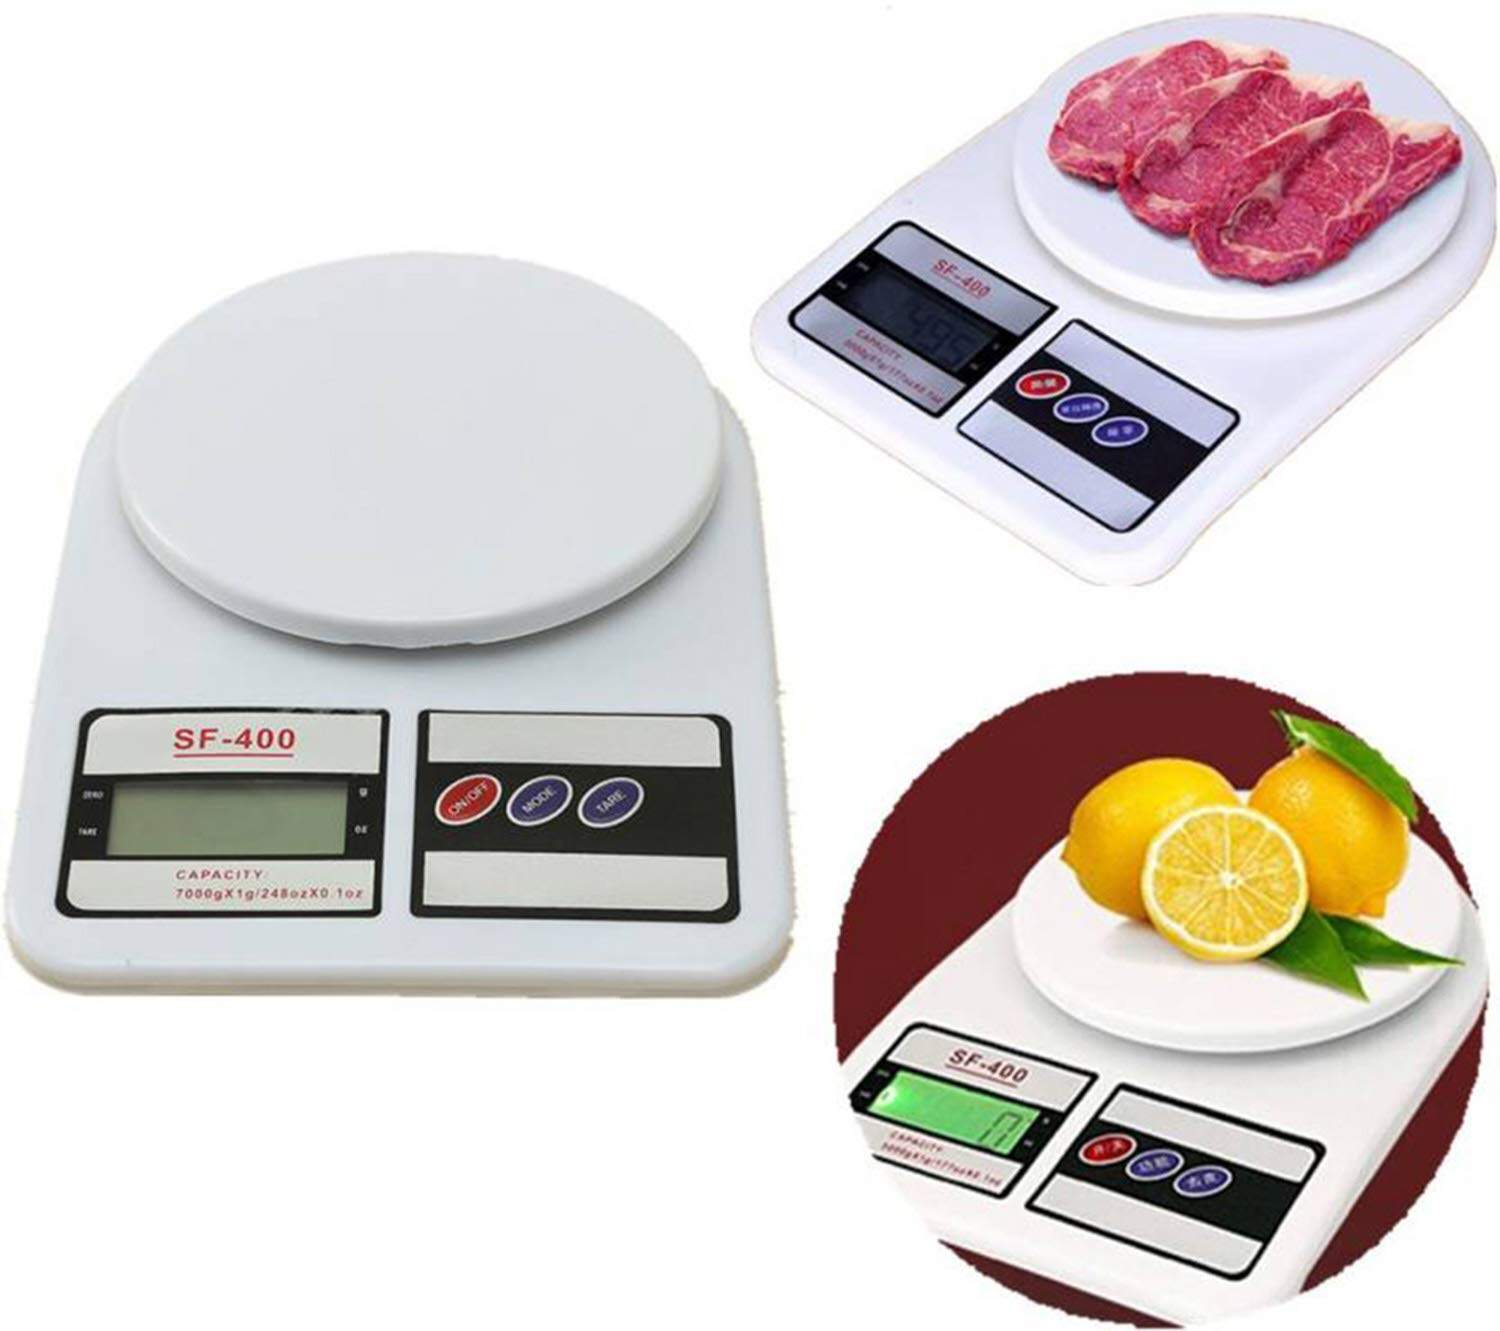 Kitchen Scale - Measure Tools - Electronic Scale Digital LCD – Weight  Machine (10kg/1g): Buy Online at Best Prices in Bangladesh | Daraz.com.bd